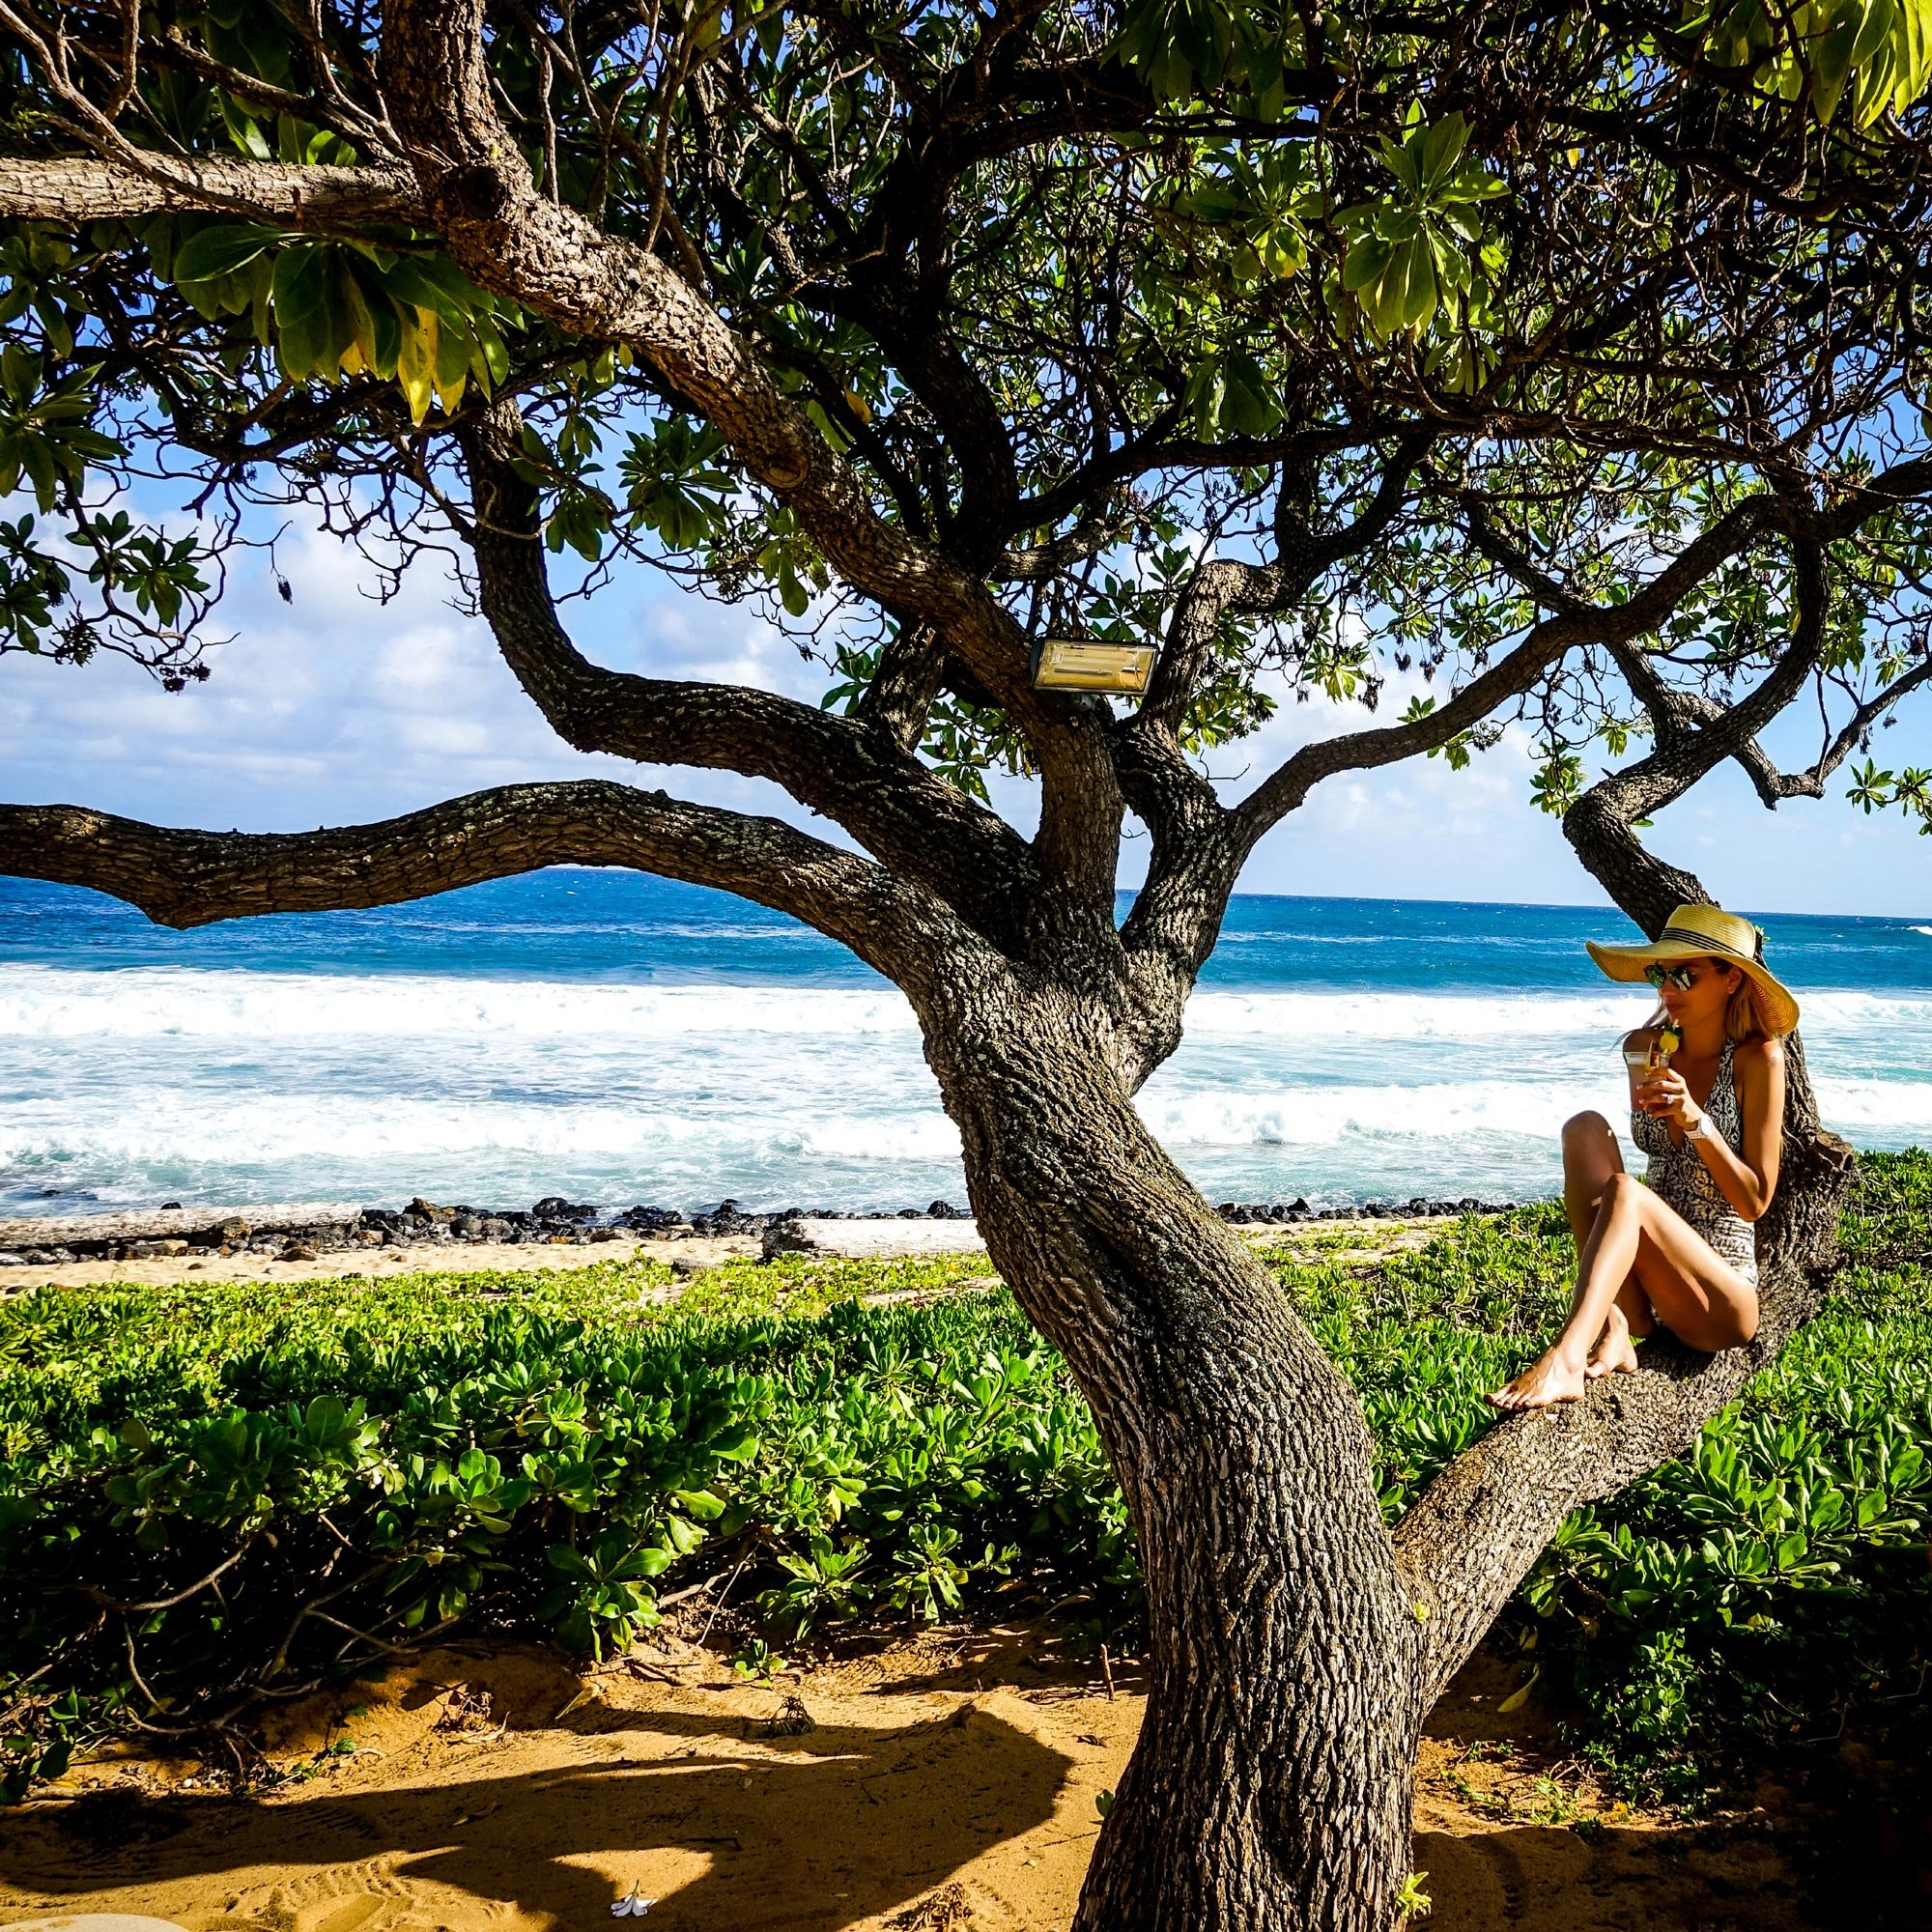 Kauai Beaches: Things To Do In Kauai Hawaii